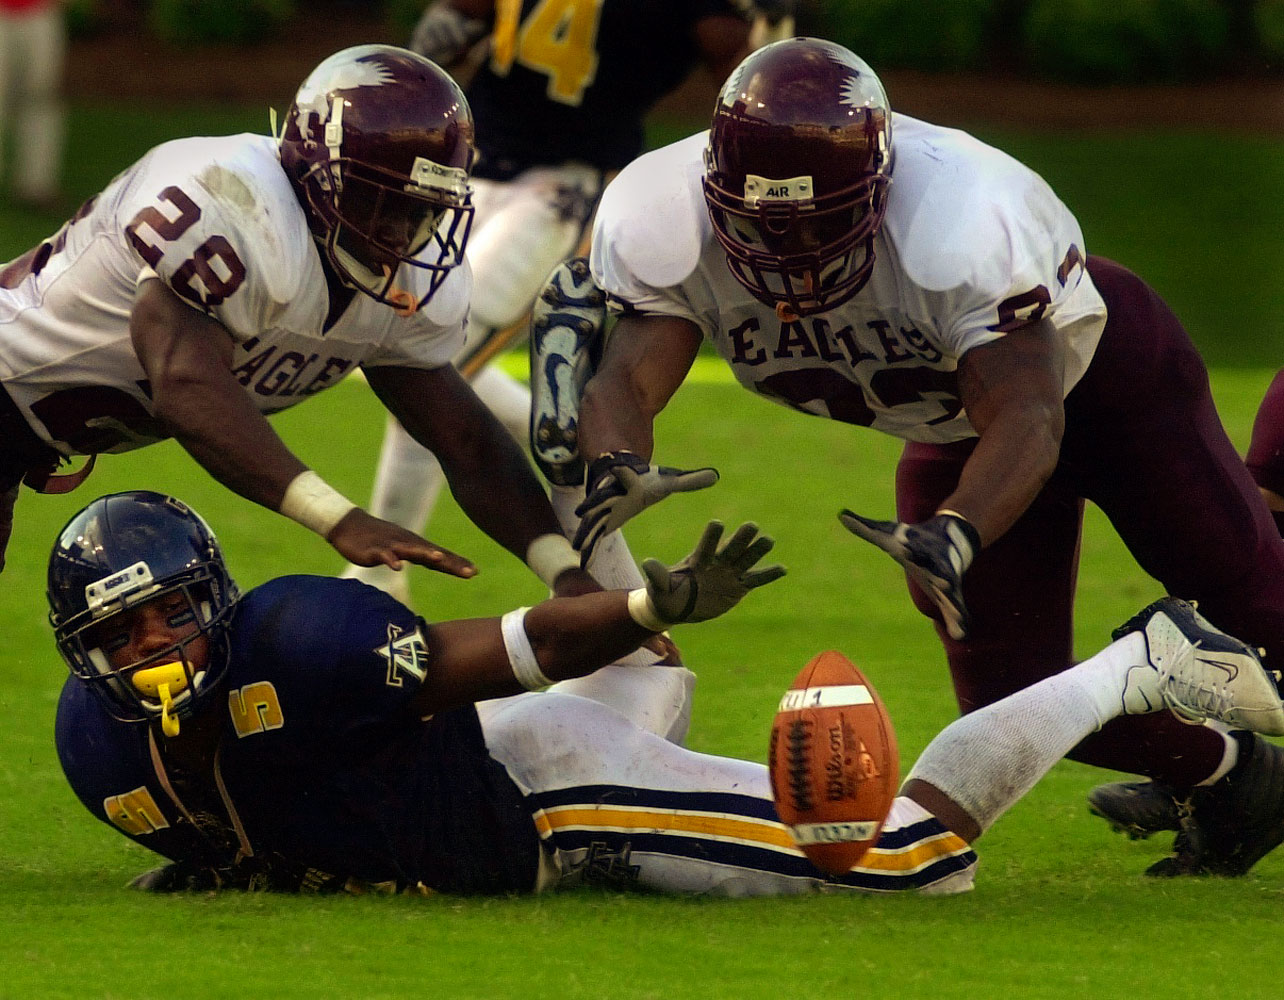 North Carolina Central University football players DeLeon Raynor, (28) left, and Jamar Neely dive for a loose ball during their victory over N.C. A &T during the Aggie-Eagle Classic at Carter-Finley Stadium in Raleigh. NCCU won 33-30. At bottom is Aggies' Douglas Brown.